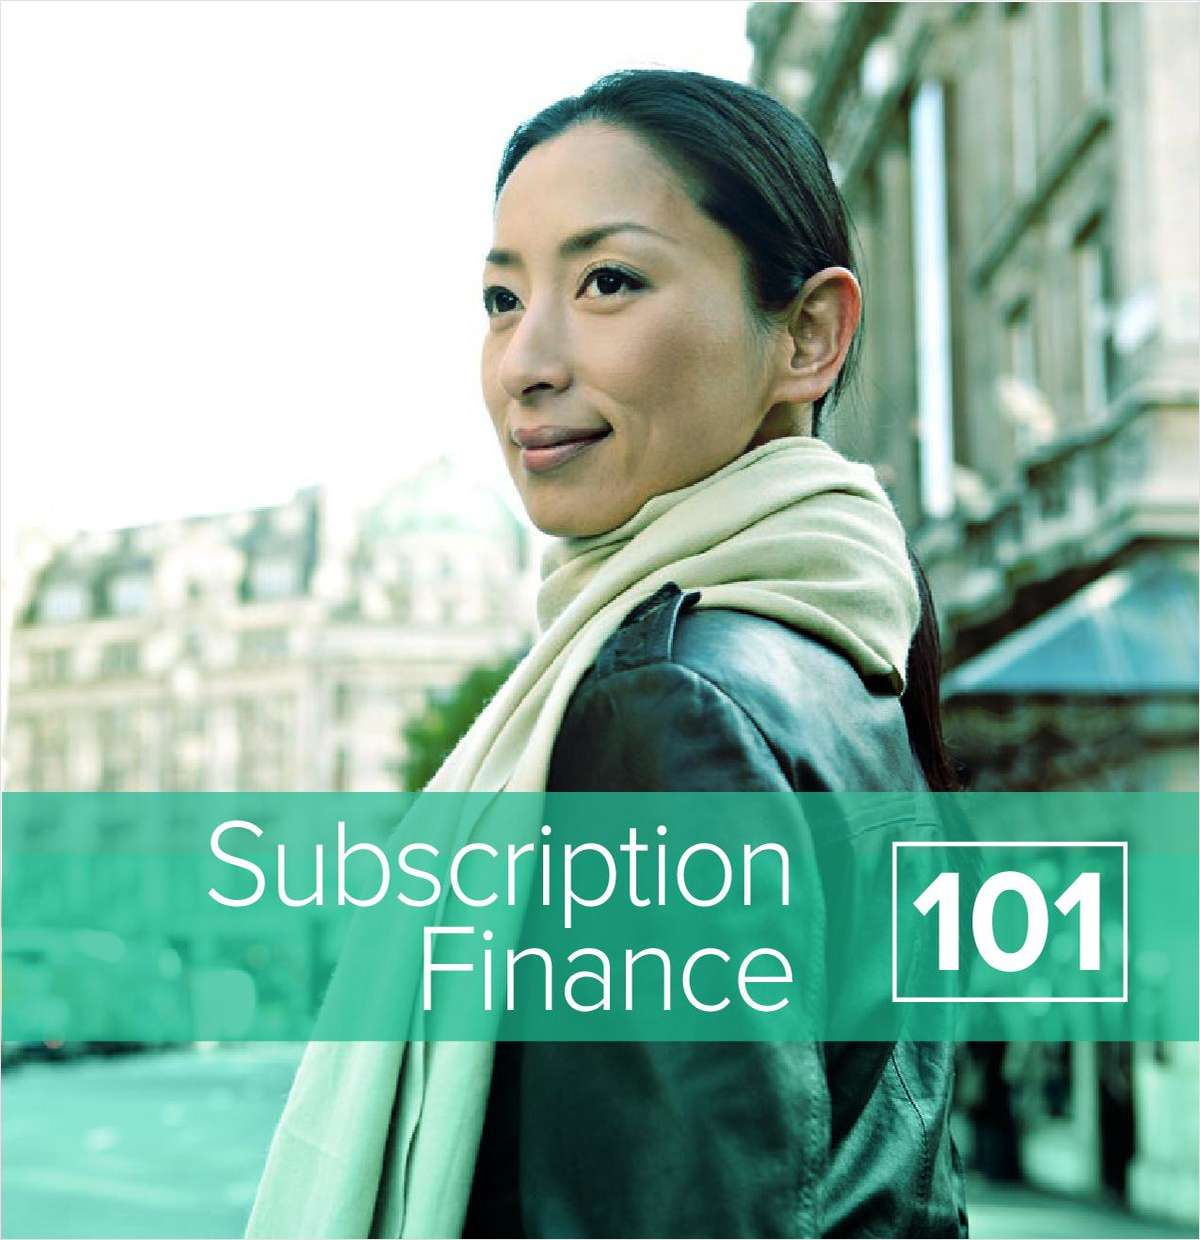 Subscription Finance 101